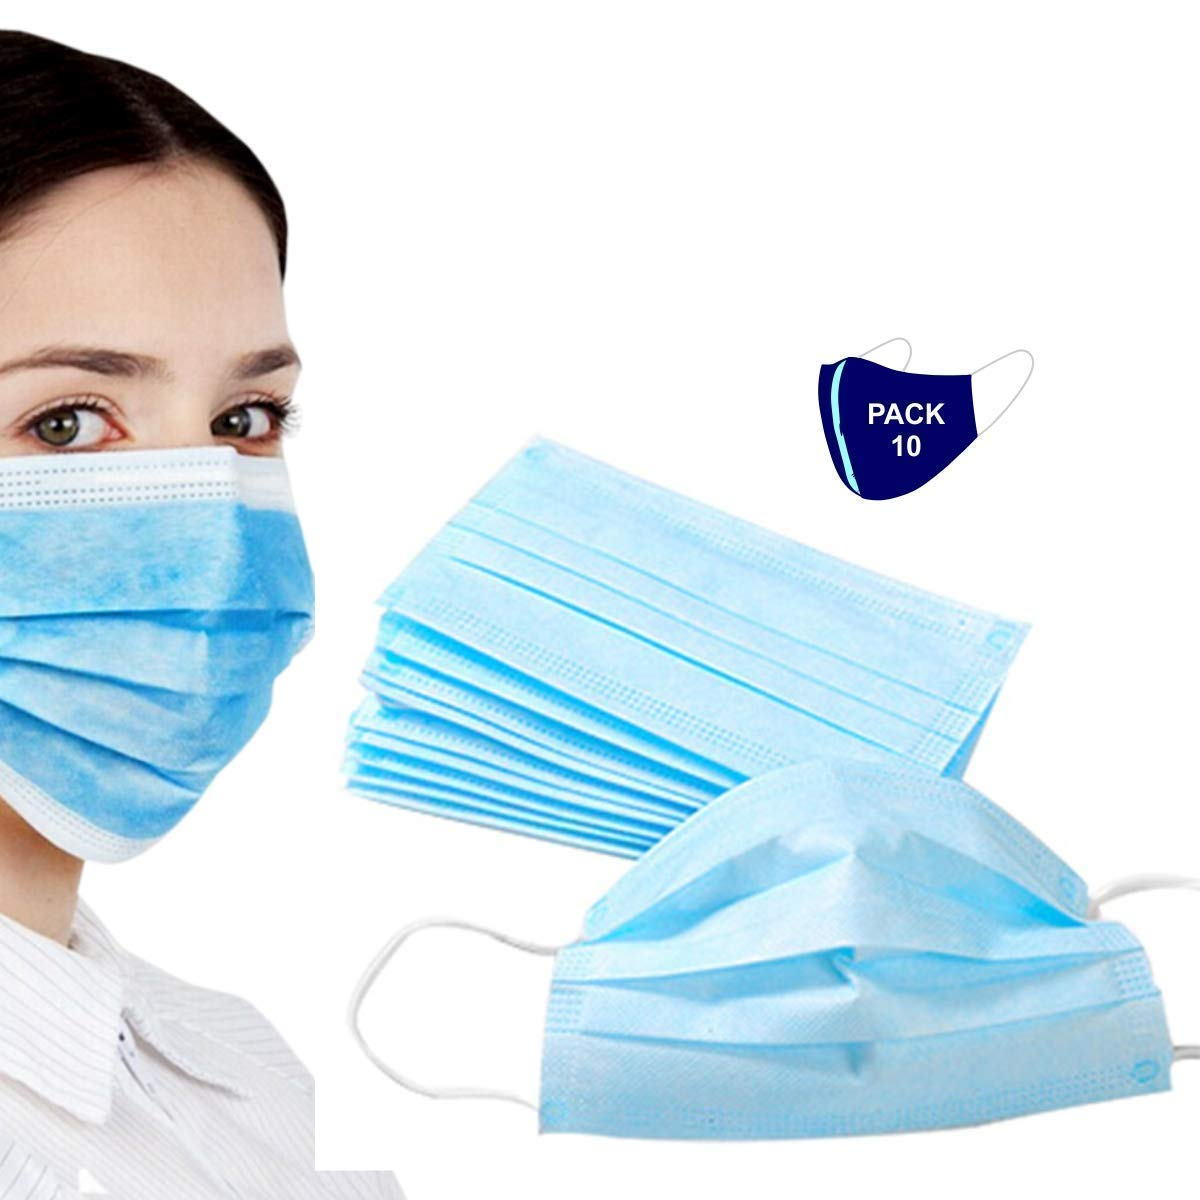 Disposable Surgical Masks by Urbangabru